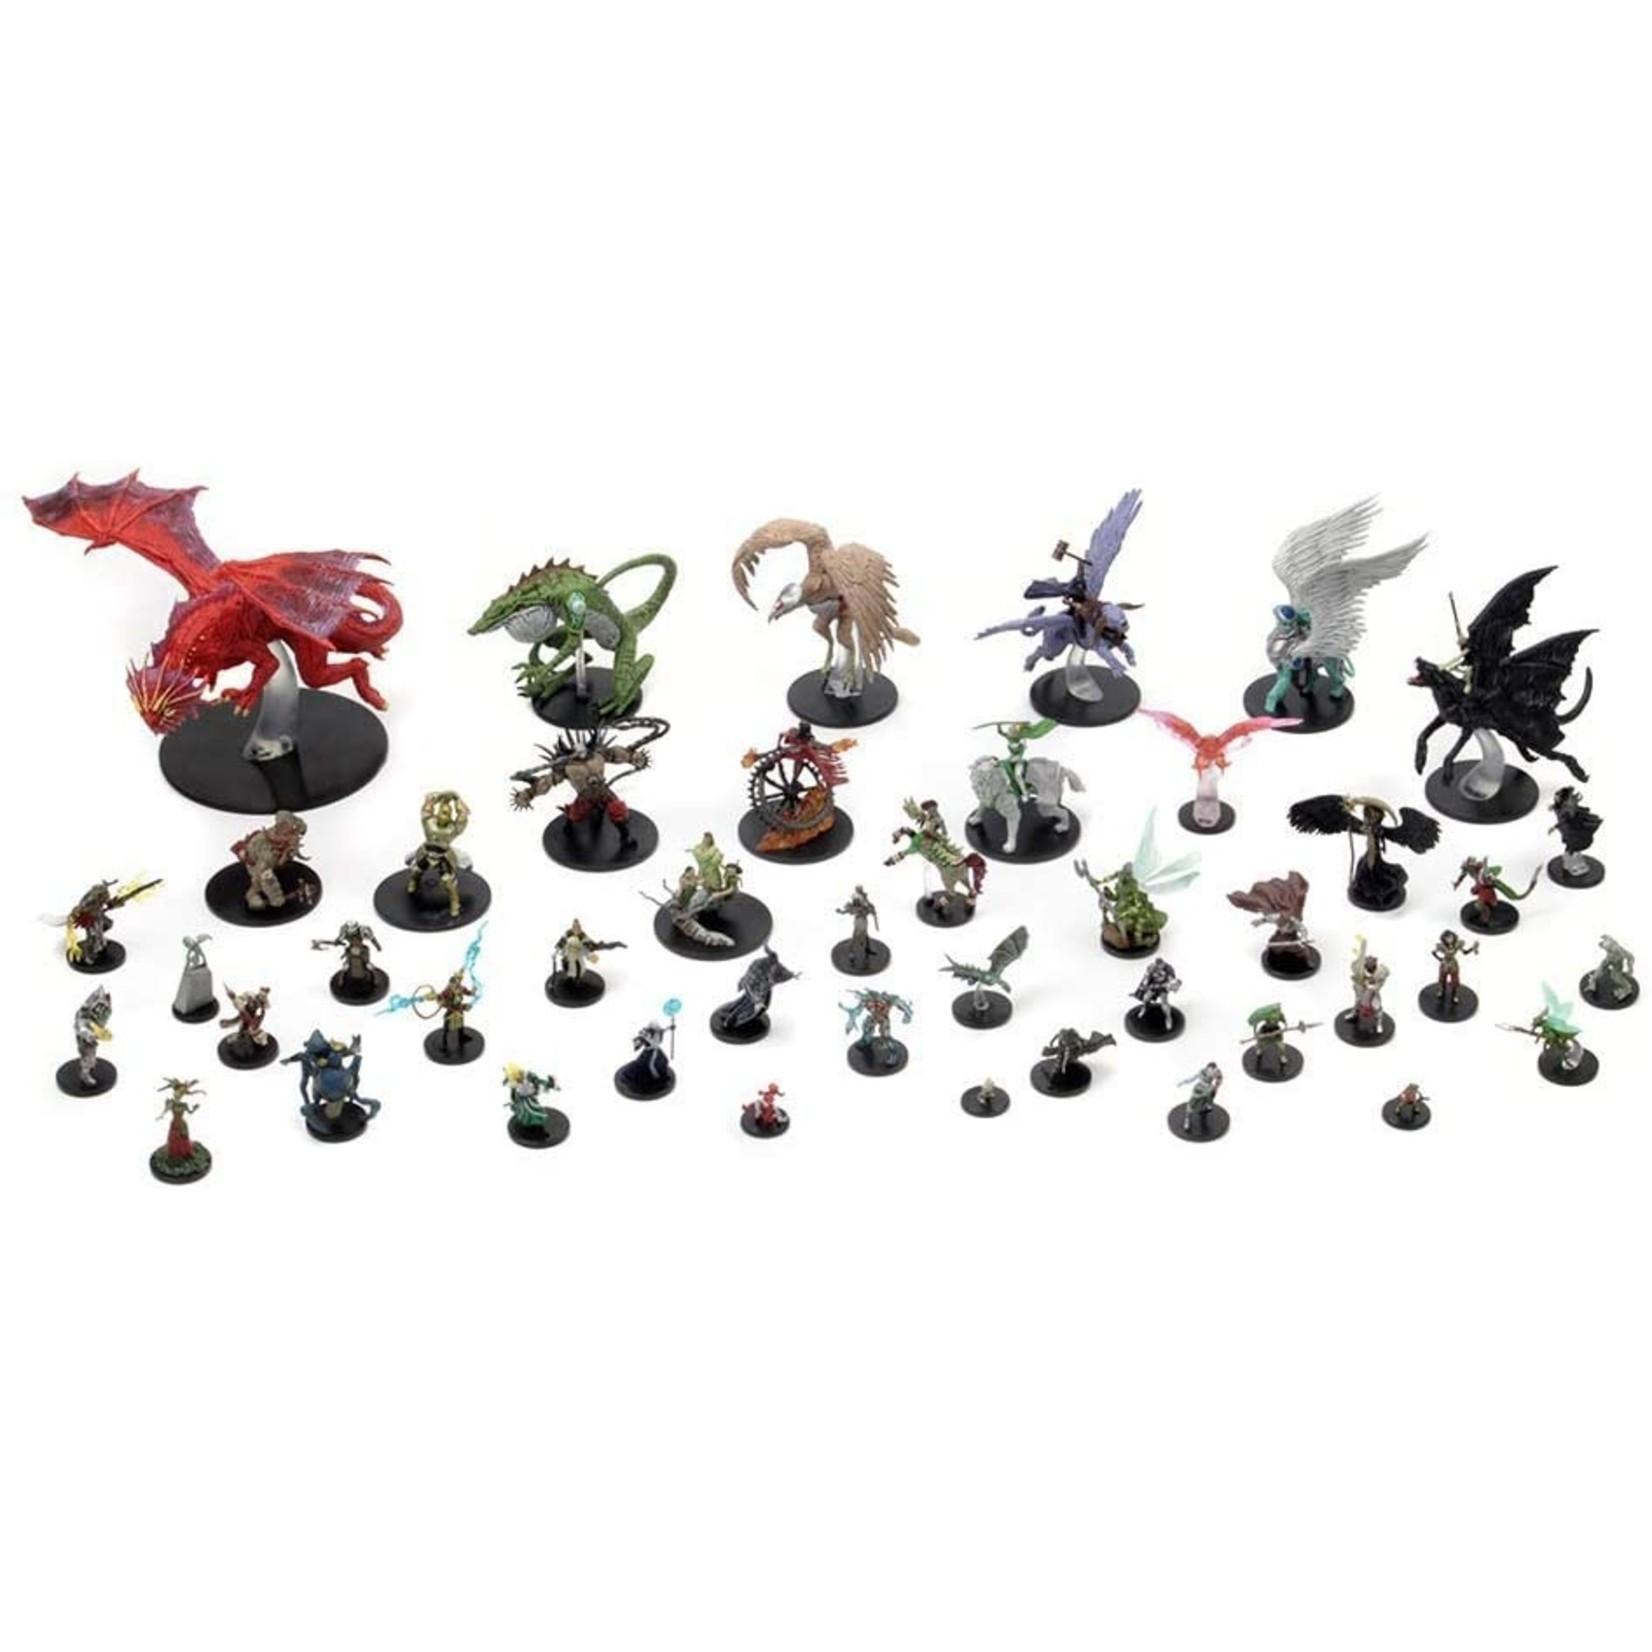 WizKids Dungeons & Dragons Fantasy Miniatures: Guildmasters Guide to Ravnica Booster Pack